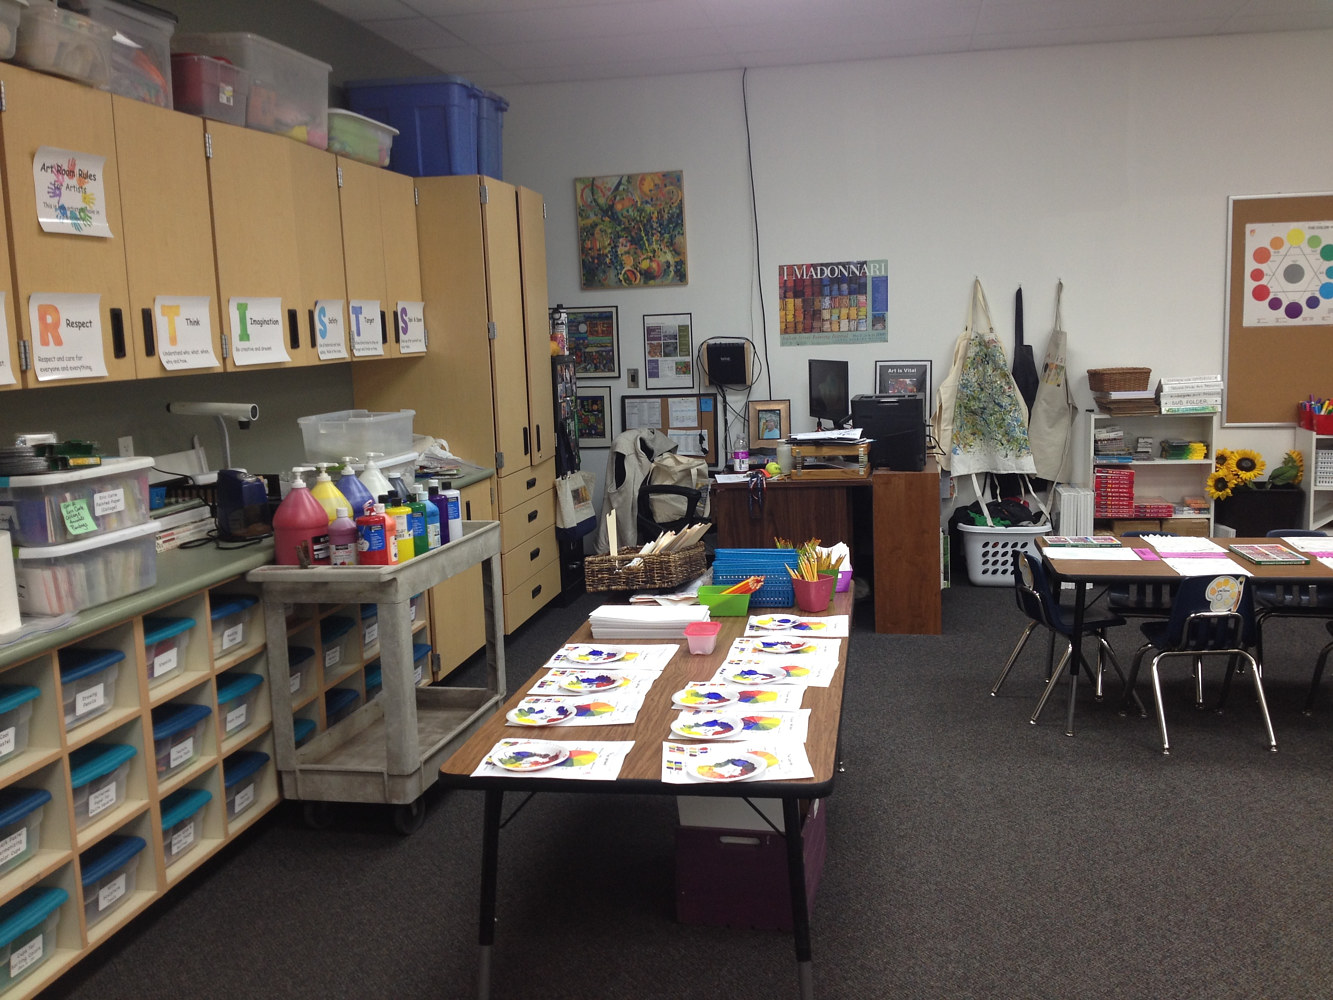 Prep Table at the back of the room in a designated Art Room (2017) by Linnie (Victoria) Aikens Lindsay